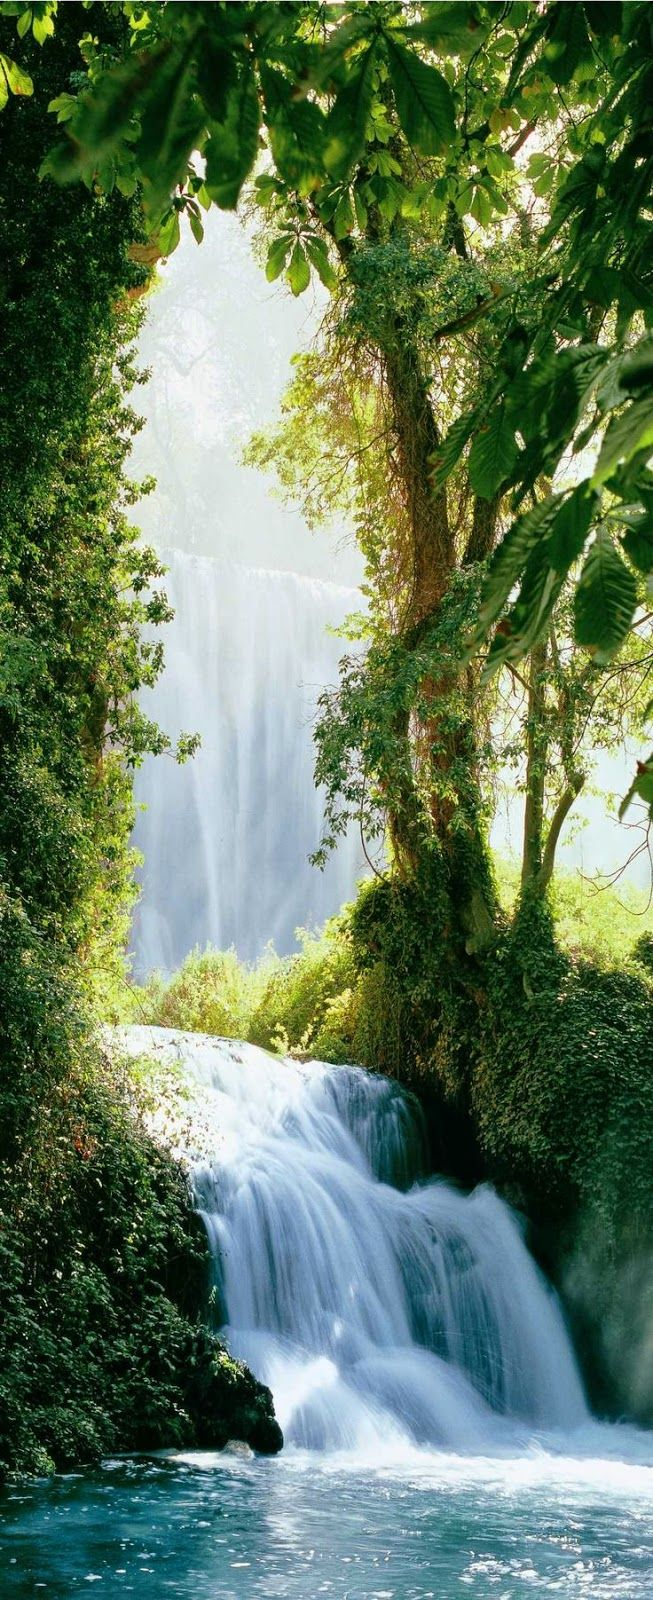 This is exactly the image I have of the Biblical Garden of Eden Aragon : Landscape waterfall - Piedra Falls, Zaragoza, Spain